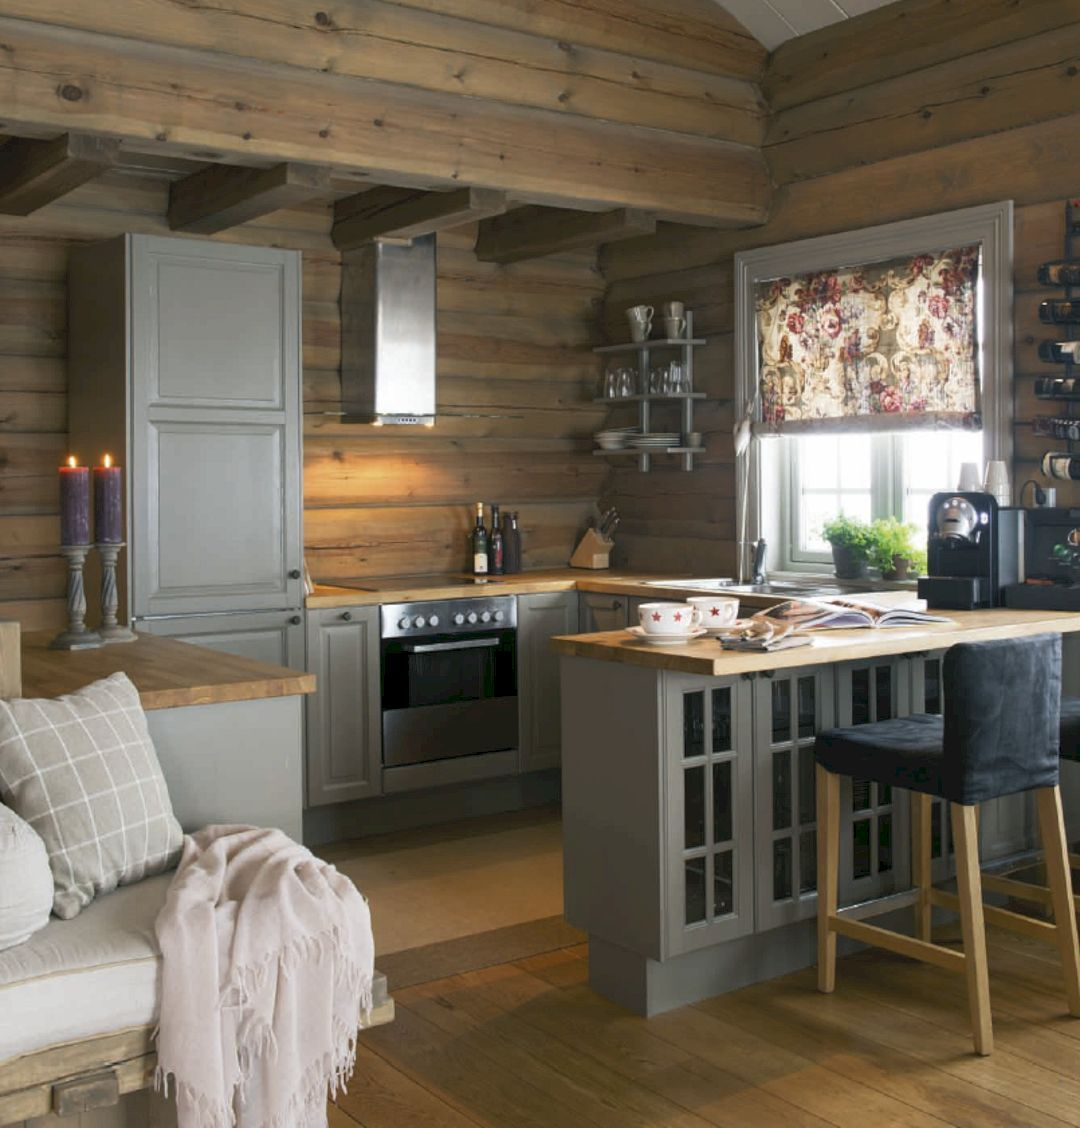 11 Amazing Small House Kitchen Designs Small Cabin Kitchens Log Cabin Kitchens Rustic Cabin Kitchens